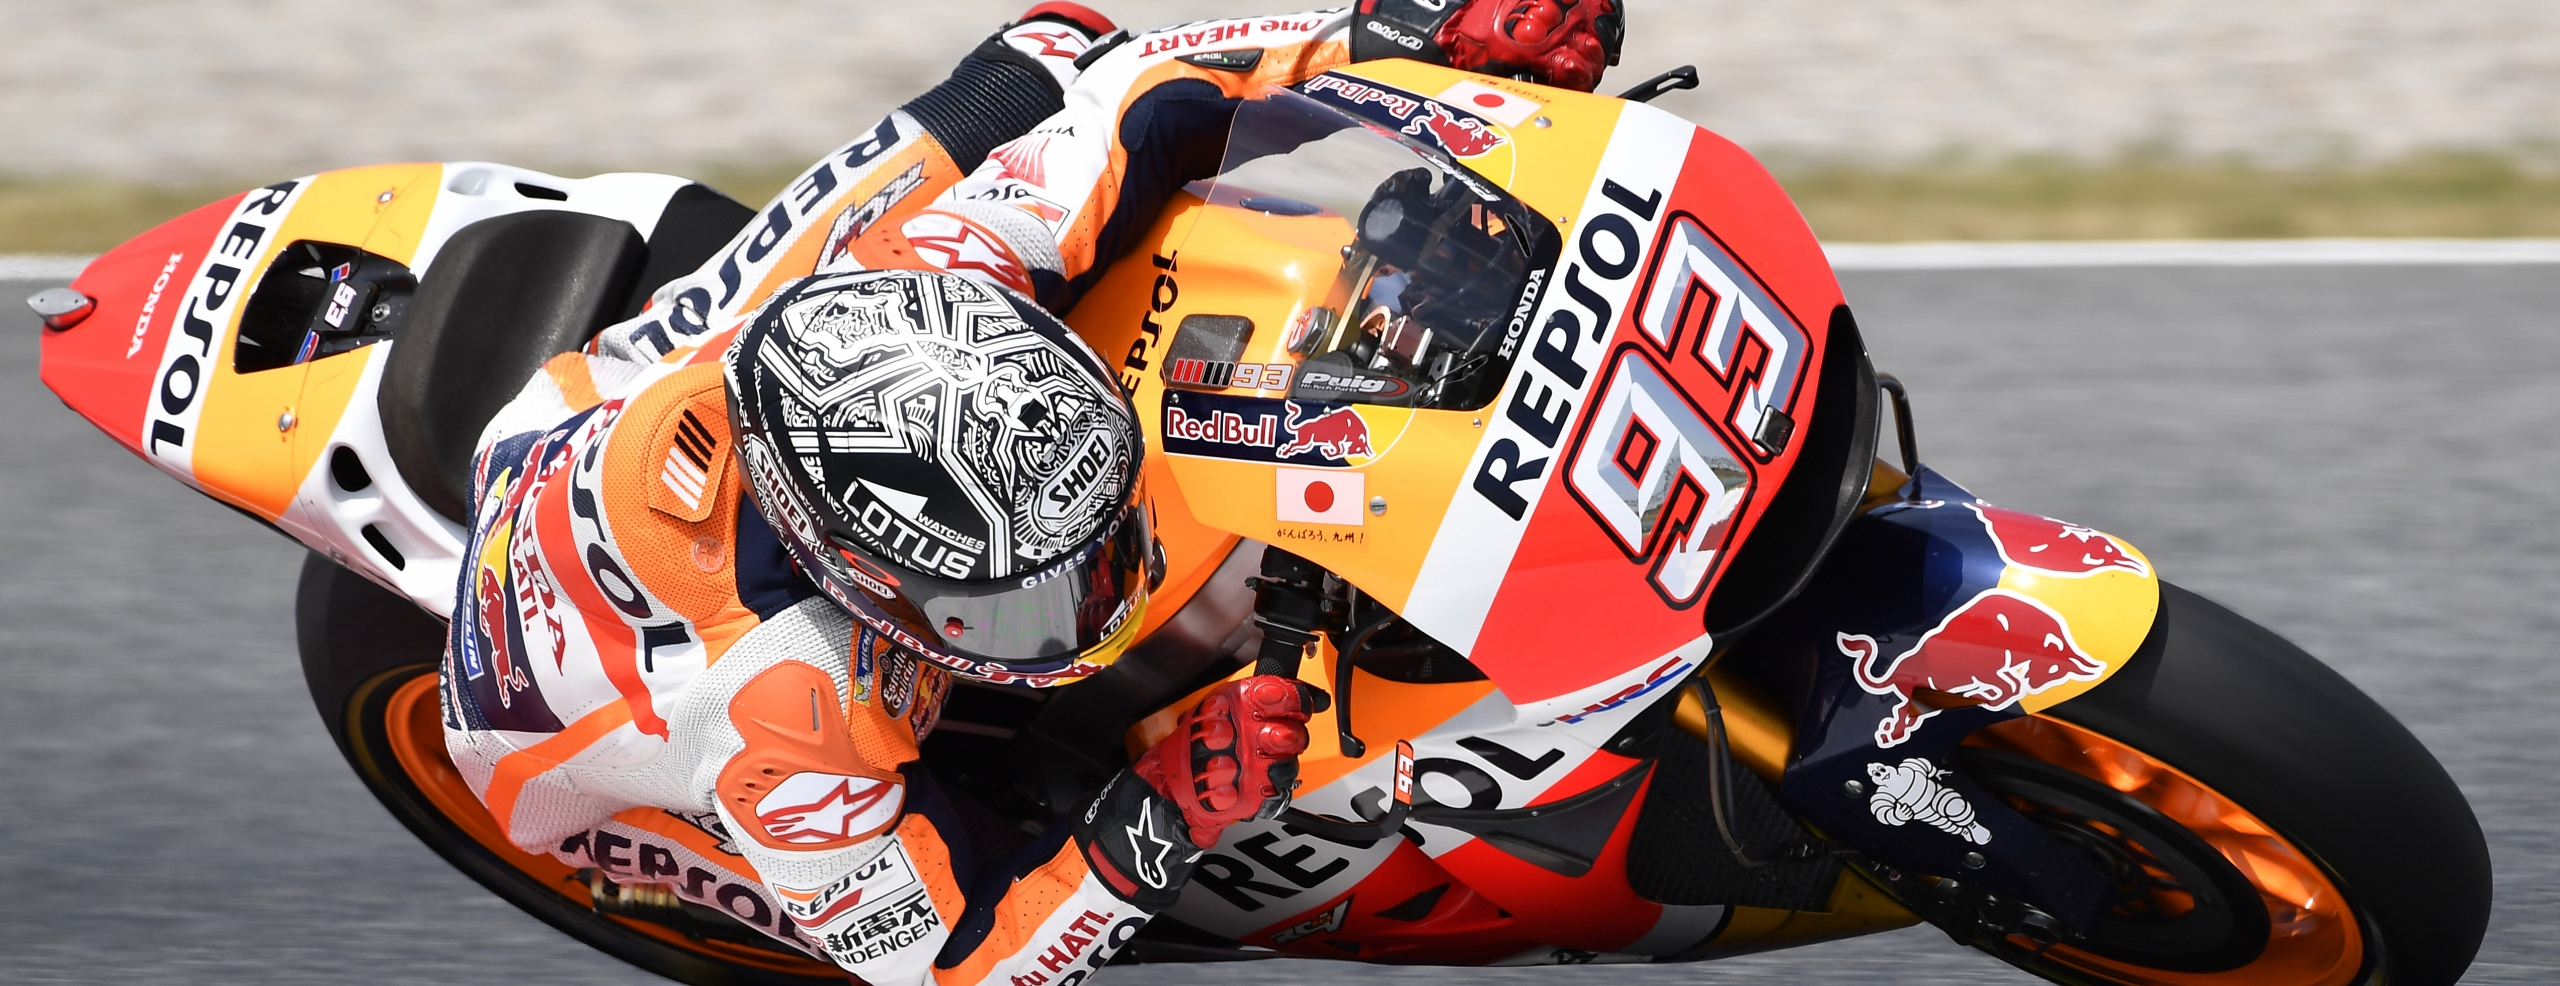 Repsol Honda Team completes one day of testing in Brno